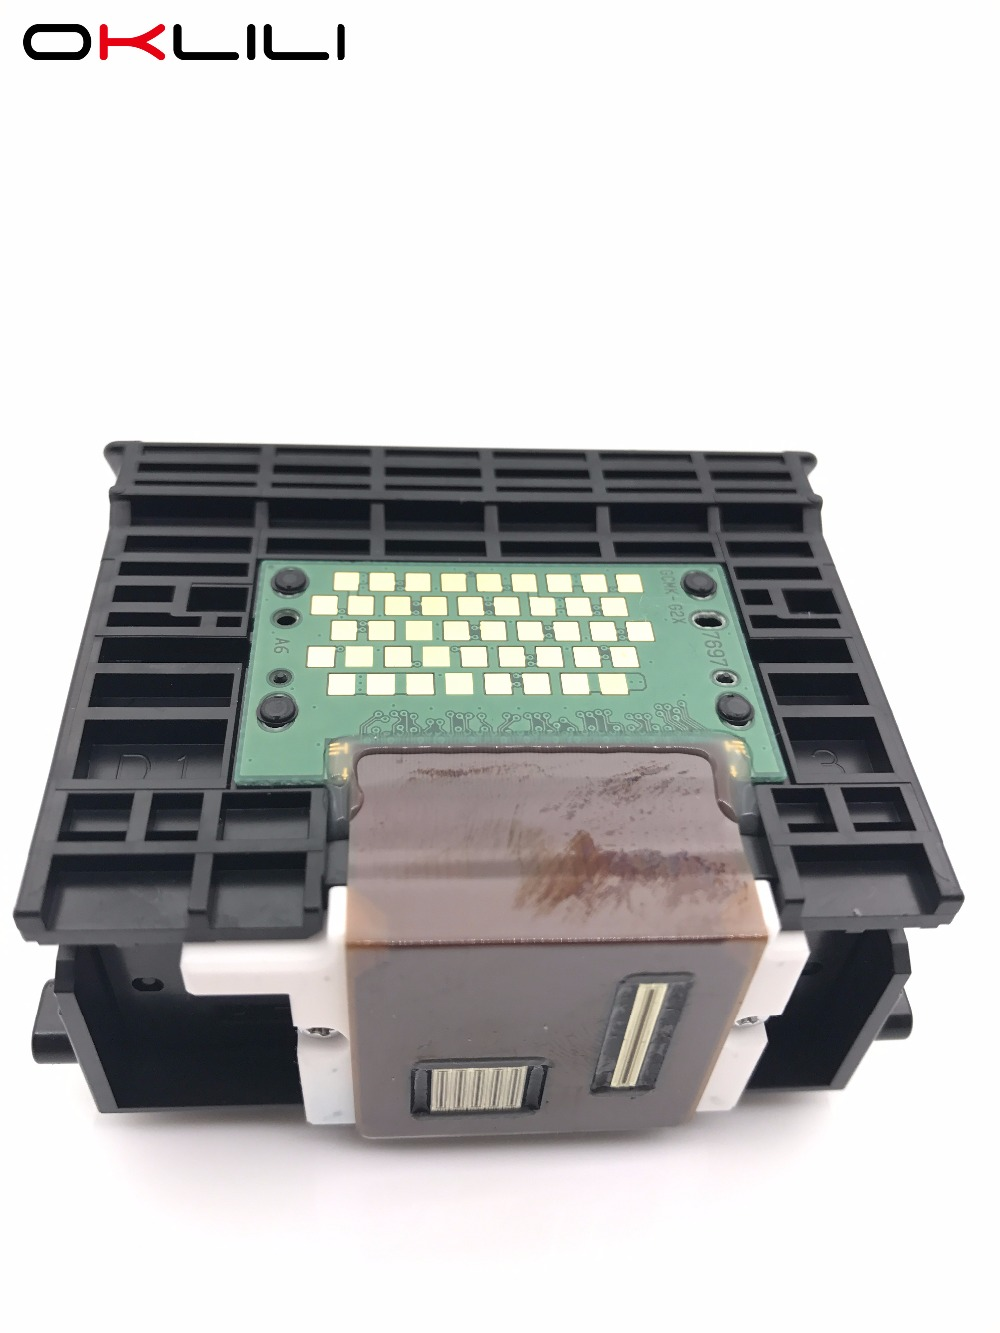 OKLILI ORIGINAL QY6-0070 QY6-0070-000 Printhead Print Head Printer Head for Canon MP510 MP520 MX700 iP3300 iP3500 original refurbished print head qy6 0039 printhead compatible for canon s900 s9000 i9100 bjf9000 f900 f930 printer head